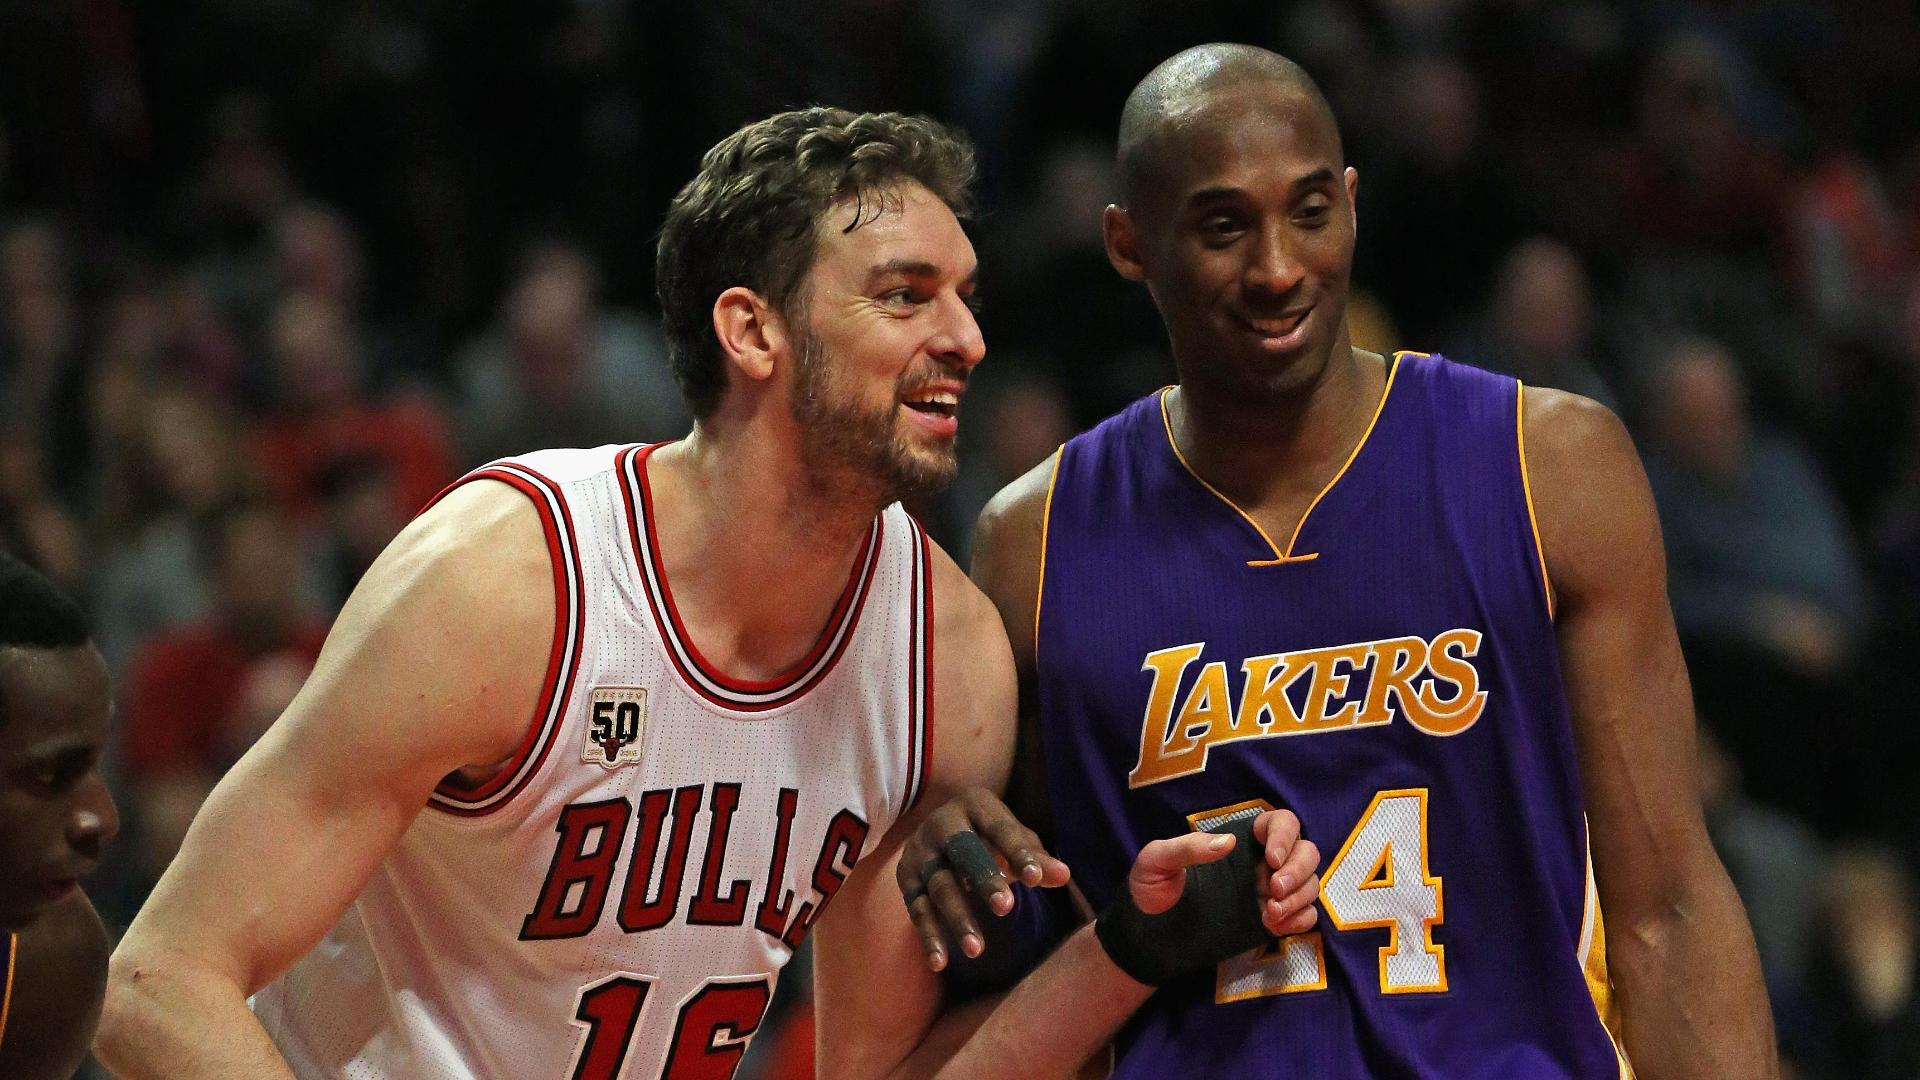 3173a1a0252d Bulls beat Lakers 126-115 to spoil Kobe s Chicago farewell - ABC News